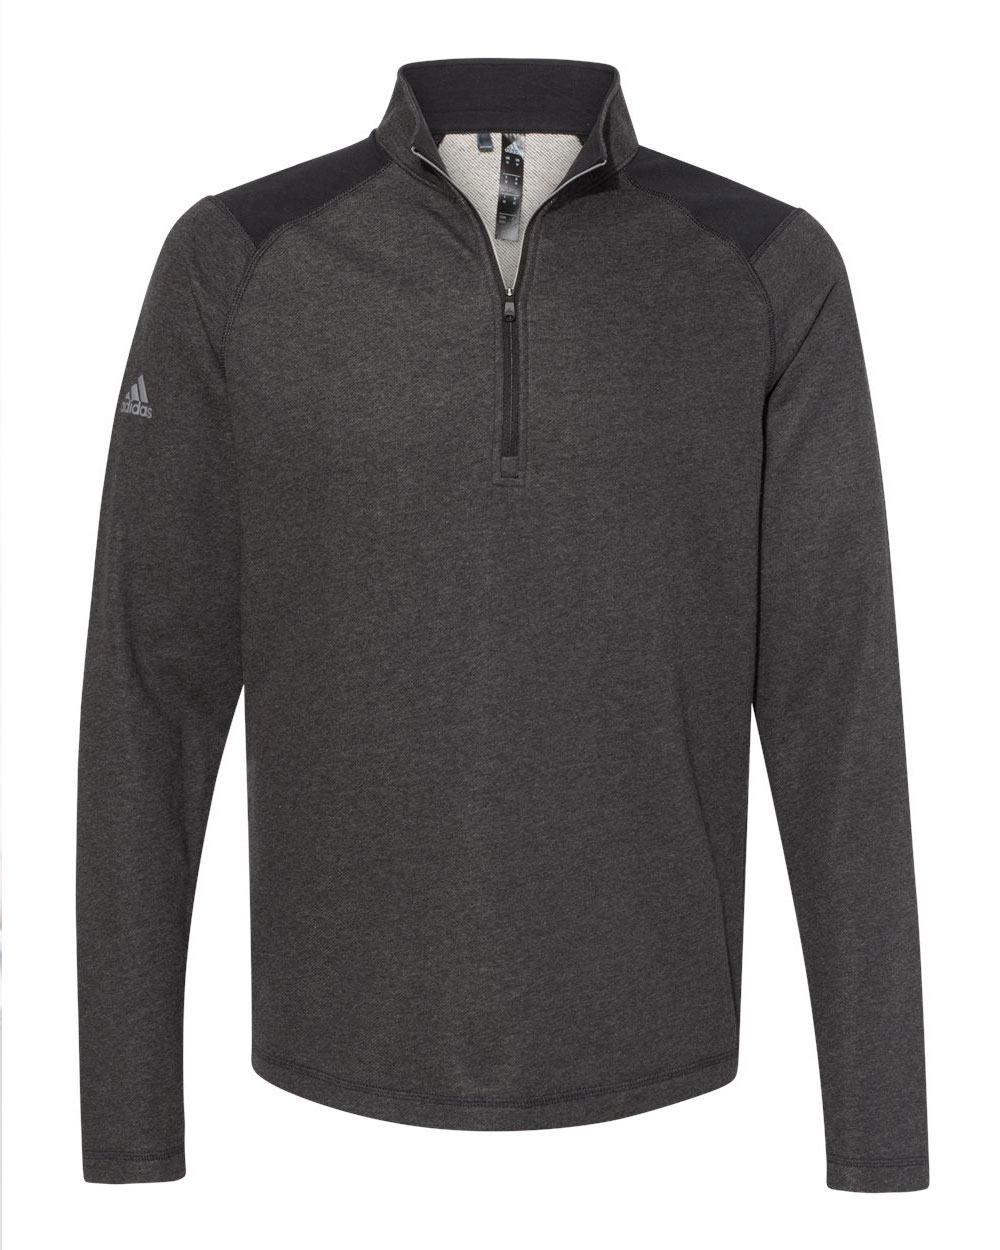 Adidas Mens Heathered Quarter Zip Pullover